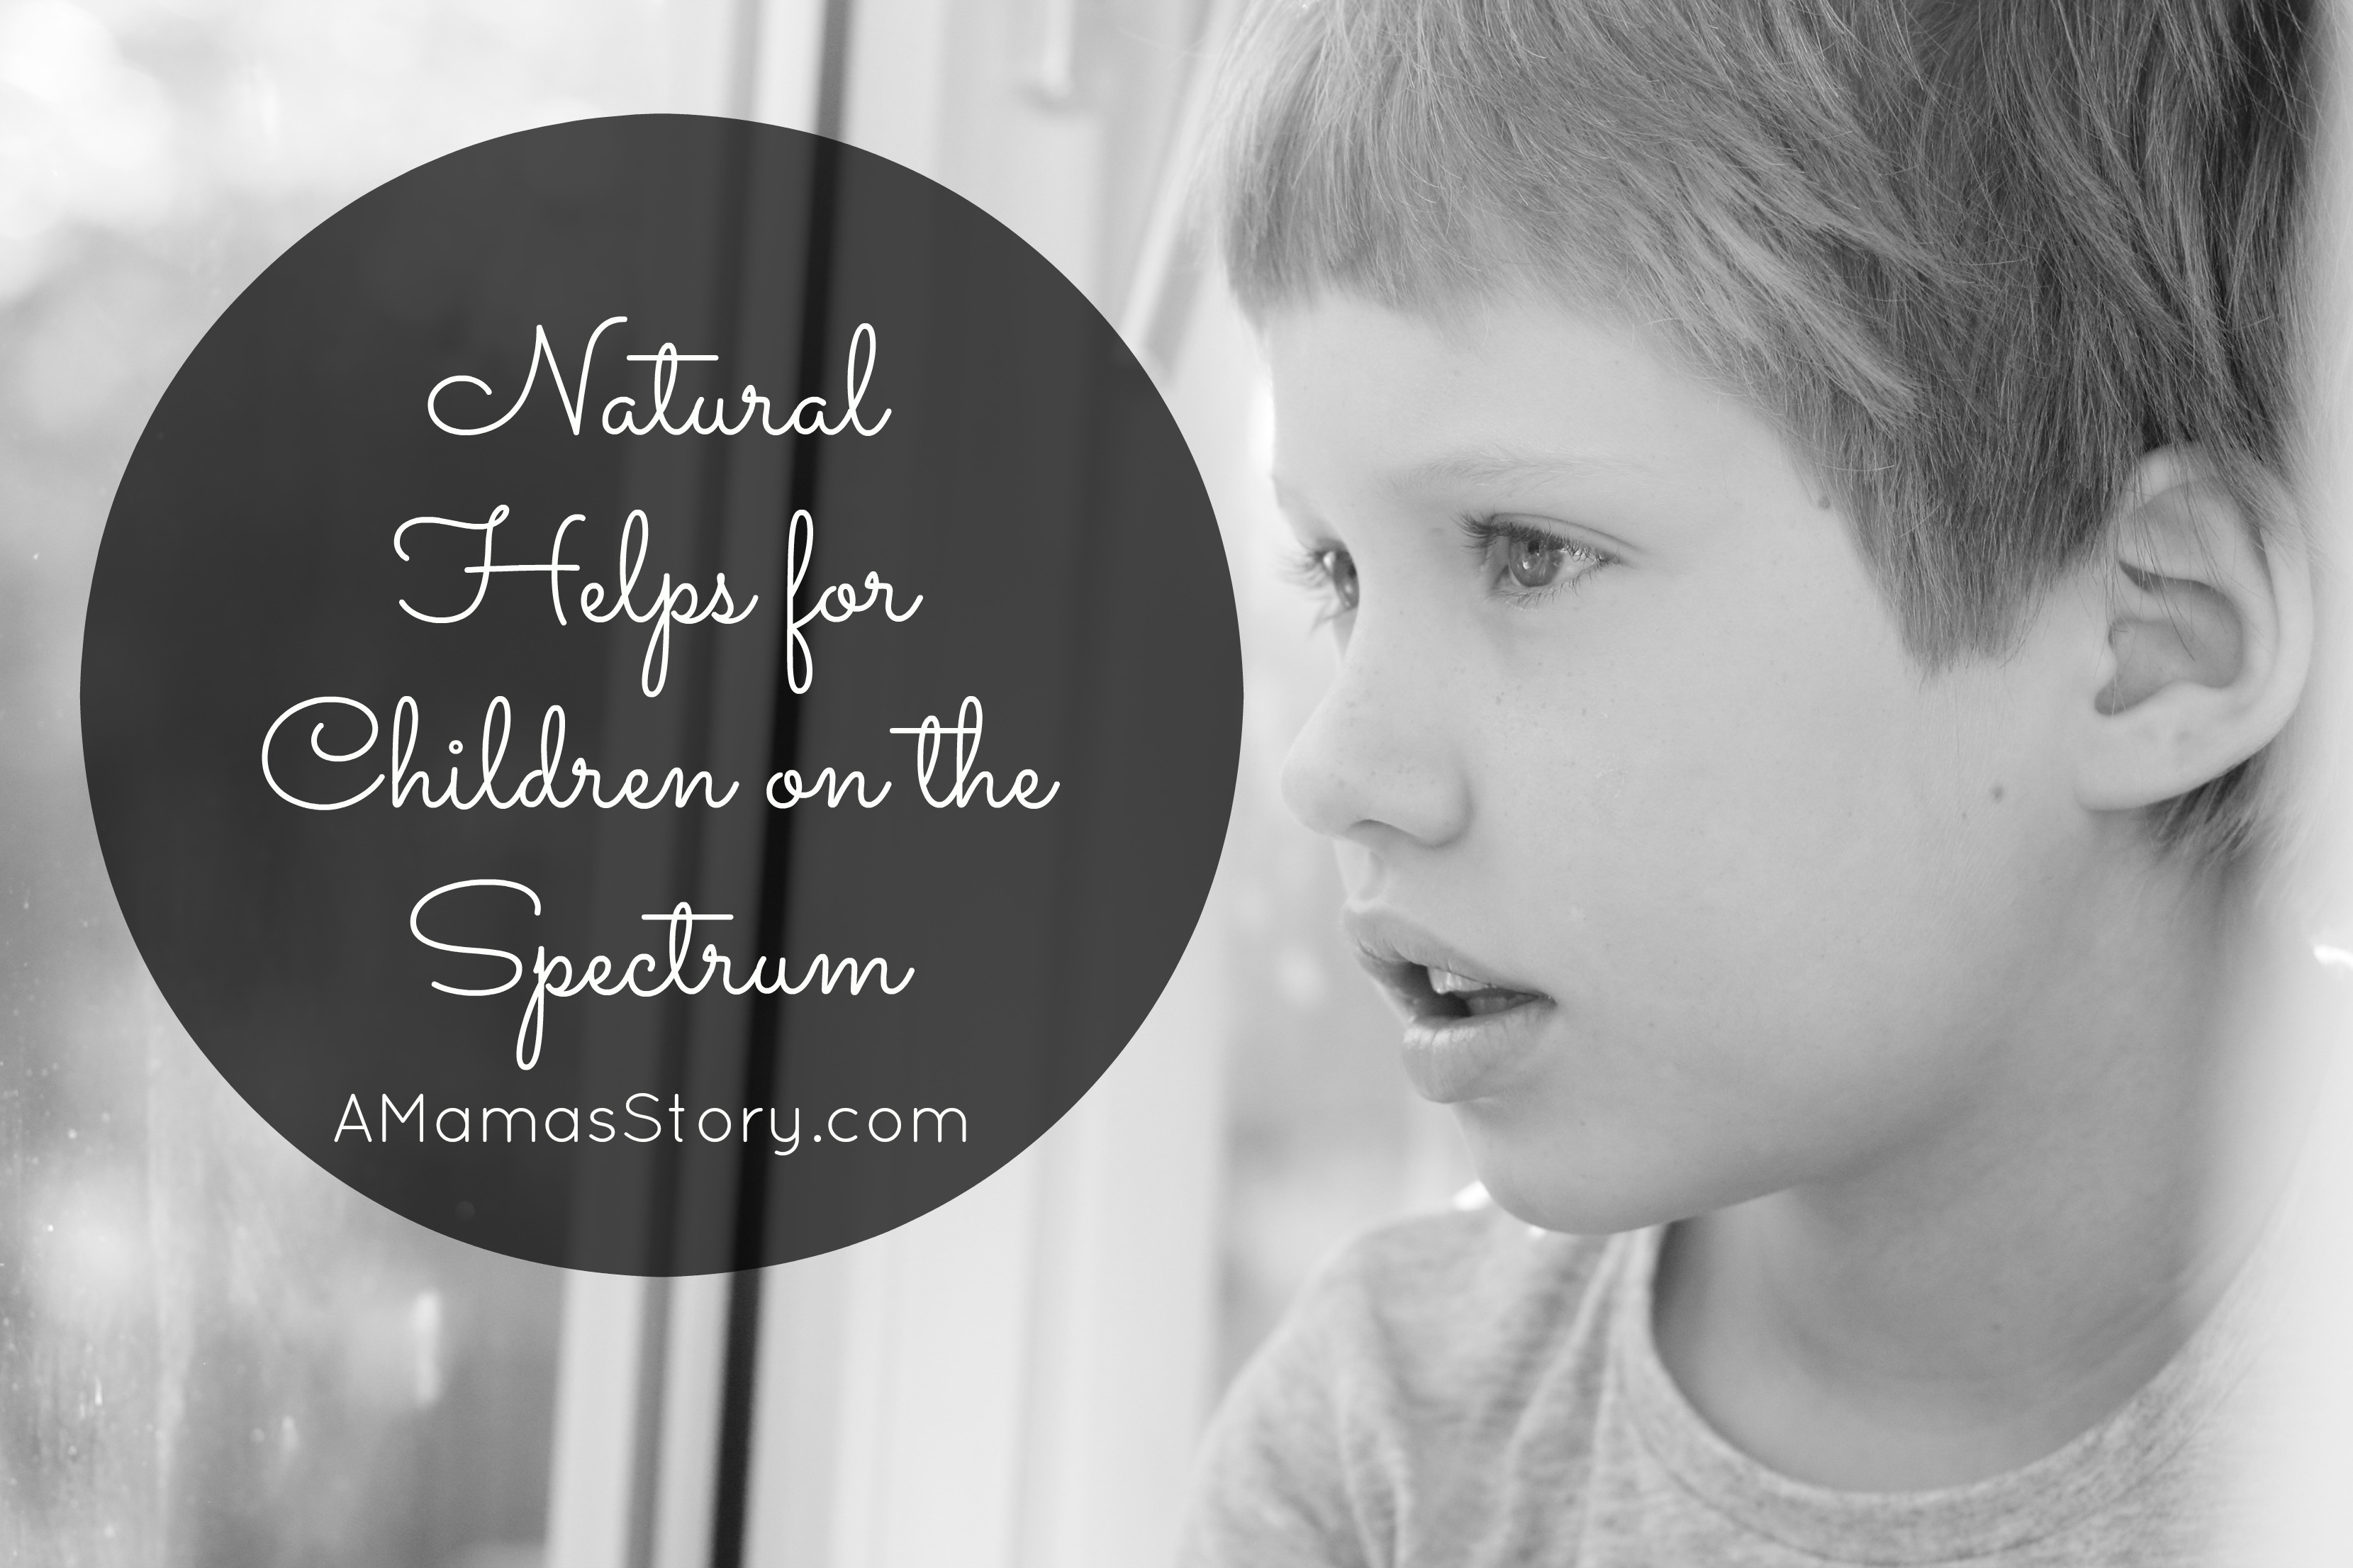 Natural Helps for Children on the Spectrum